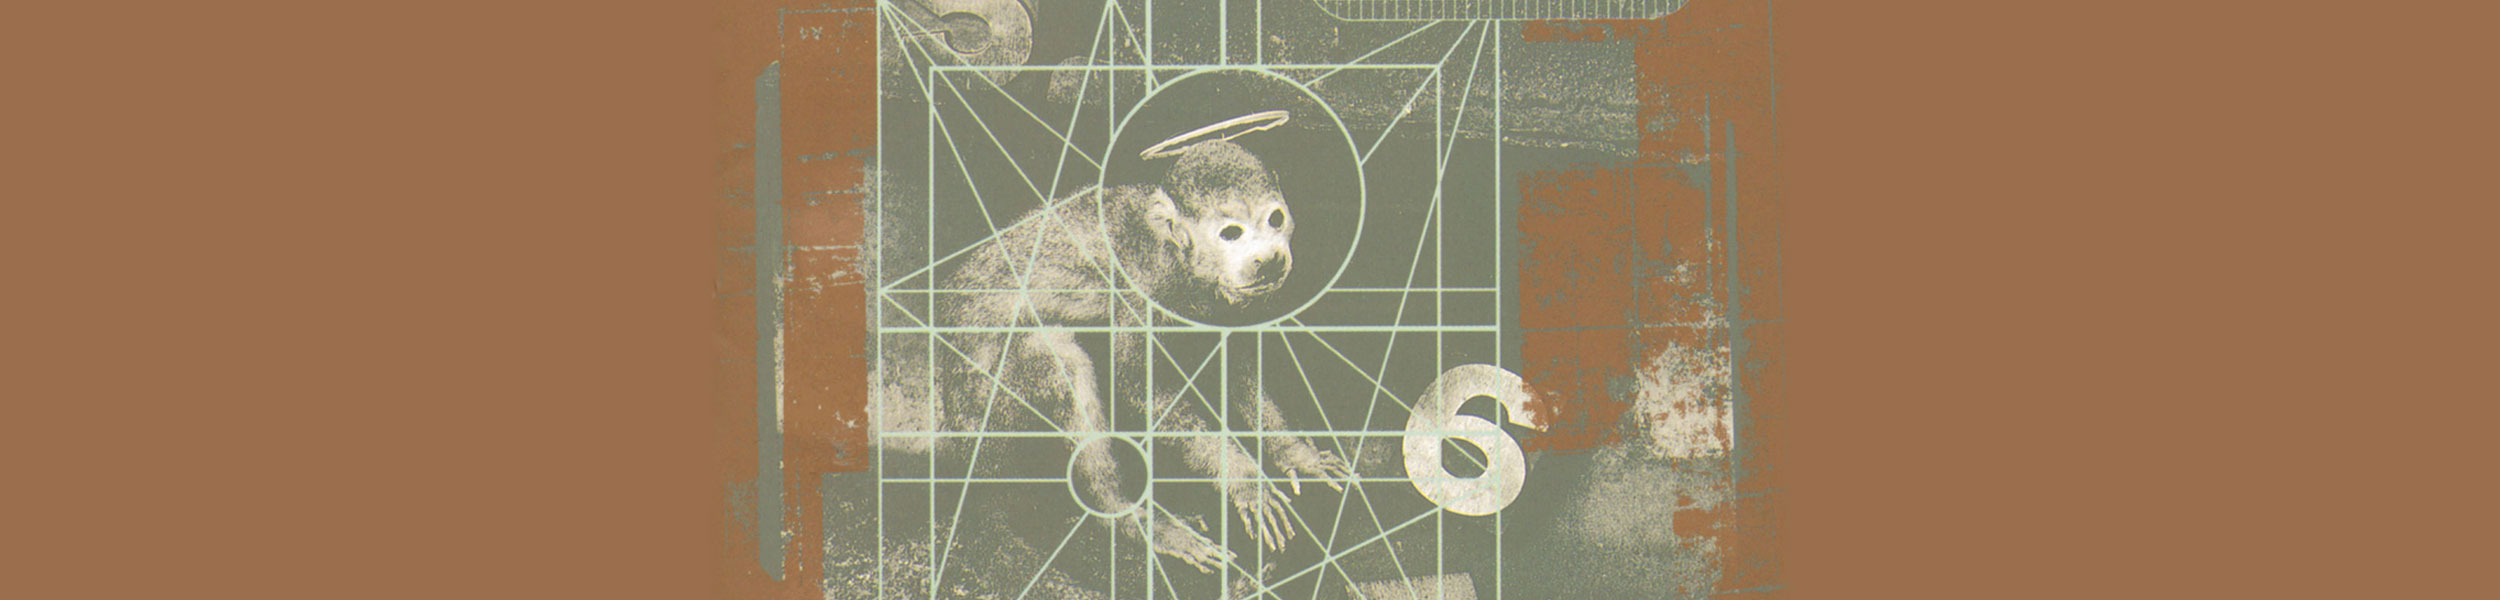 Pixies - Pure Audio Blu-Ray Edition Of Doolittle Out Next Month